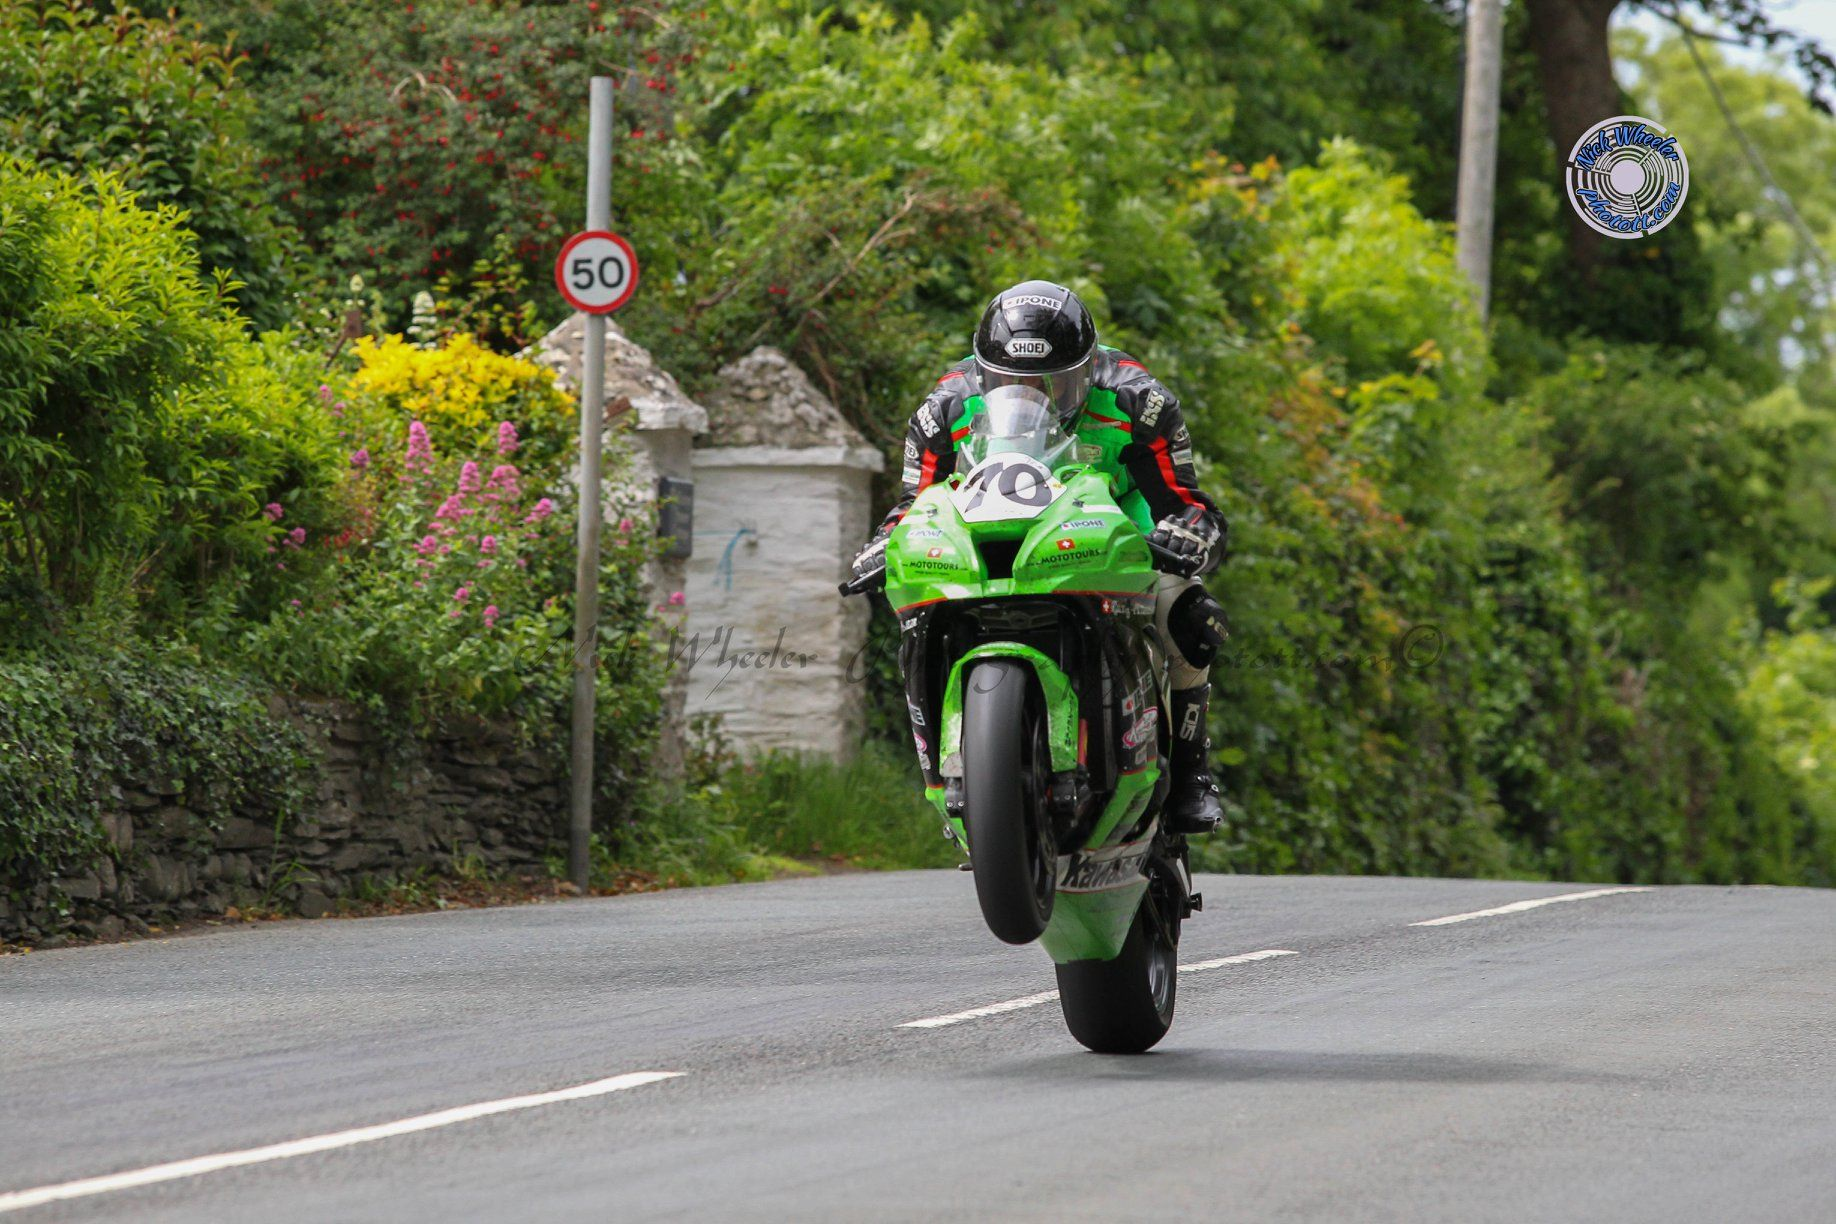 IRRC Horice: Maurer Increases Championship Lead, Wins Record Breaking Contest